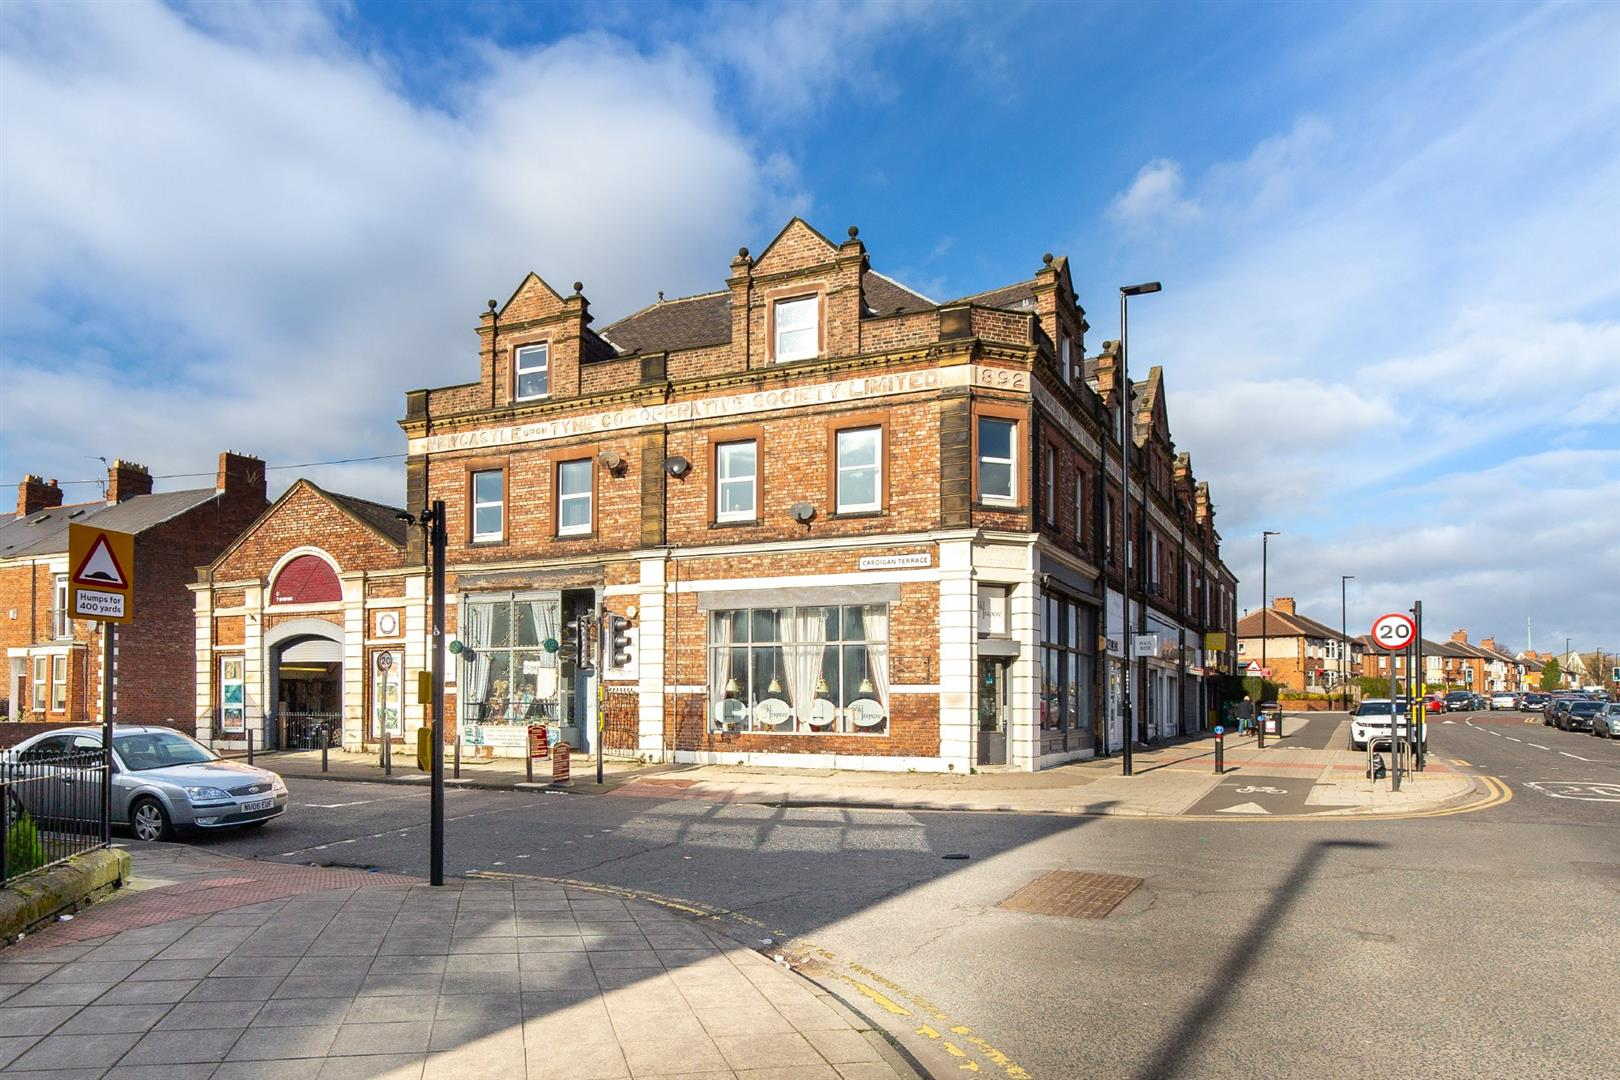 6 bed apartment for sale in Heaton, NE6 5HH, NE6